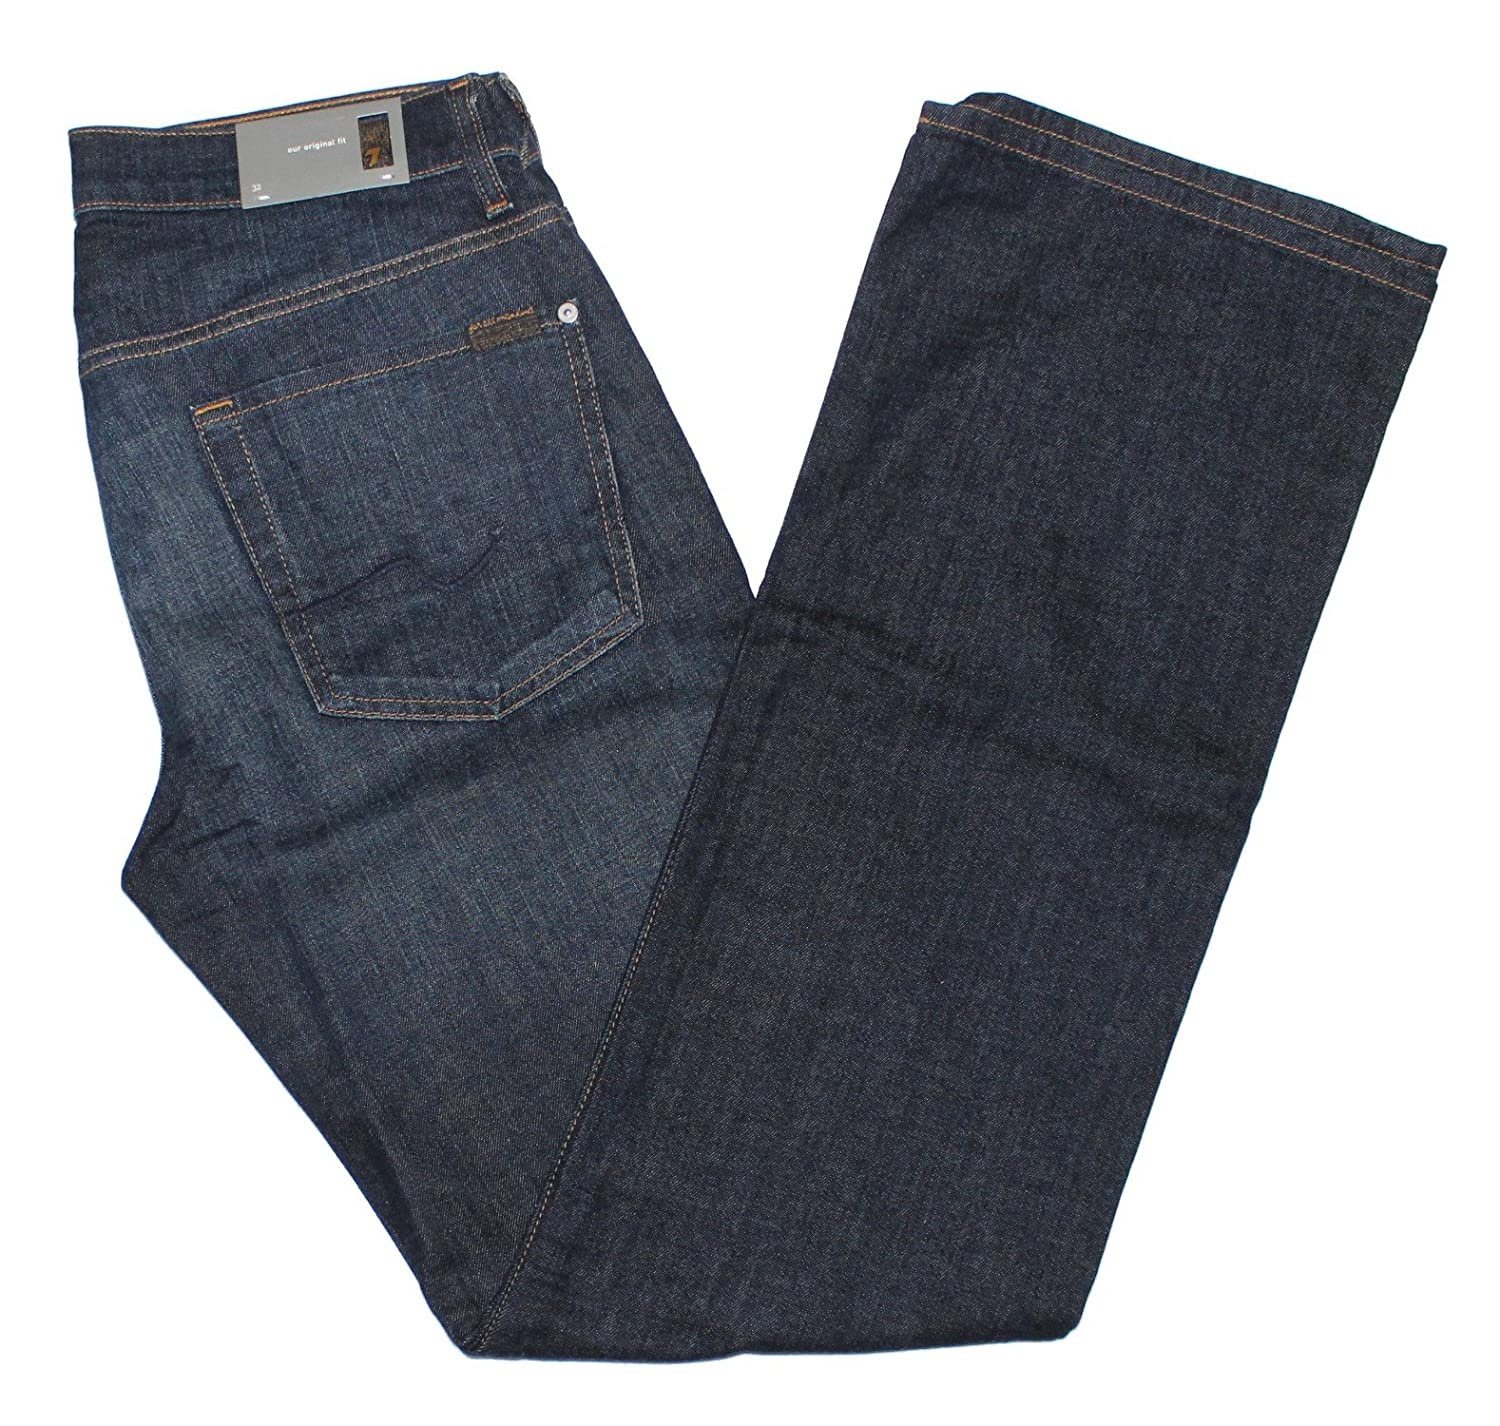 7 For All Mankind Men's Bootcut Original Fit Jeans in